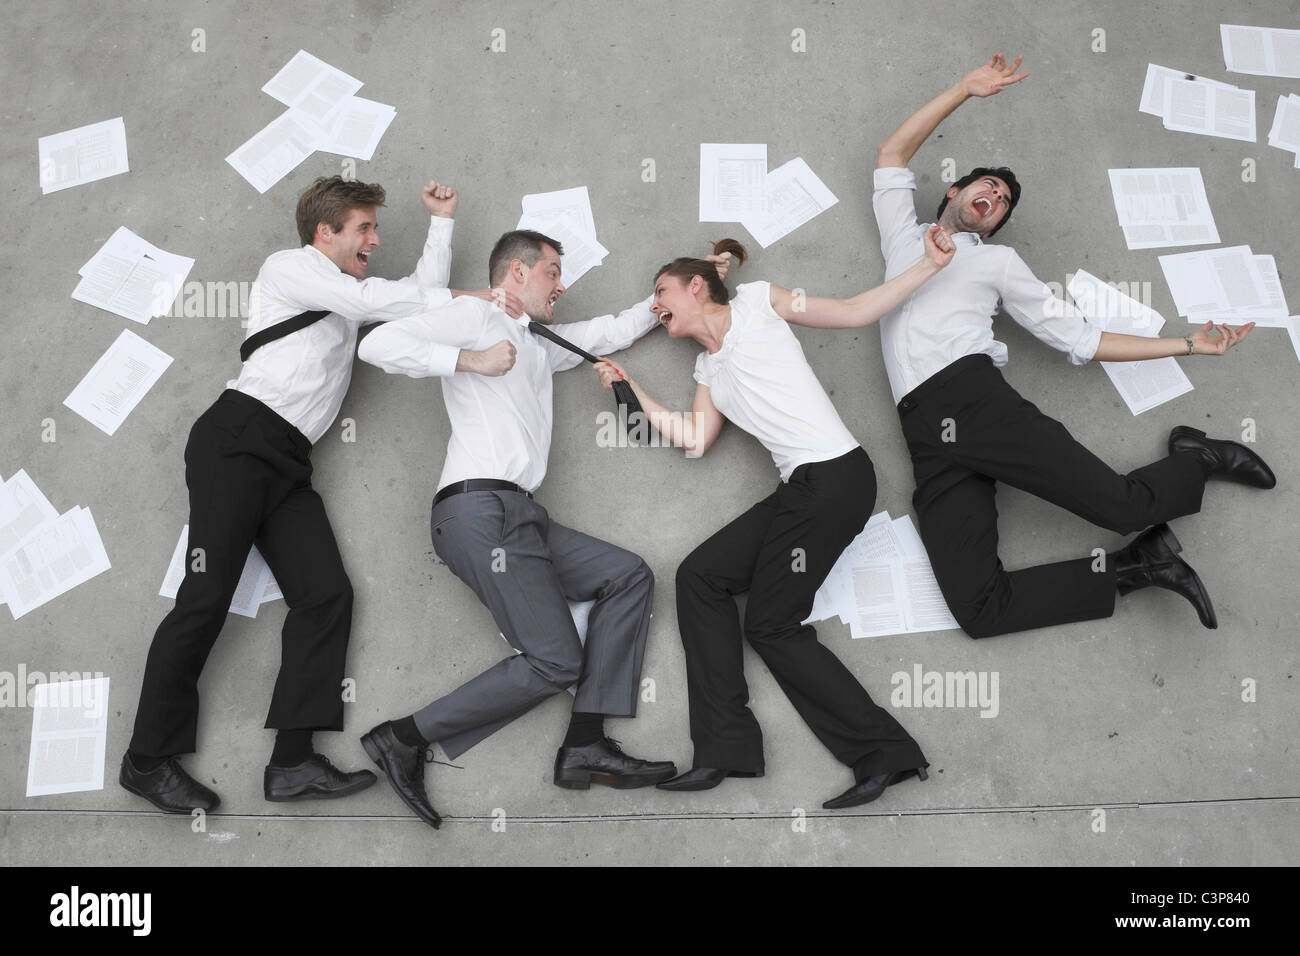 Three business people in a quarrel, woman pulling man's ties, elevated view - Stock Image